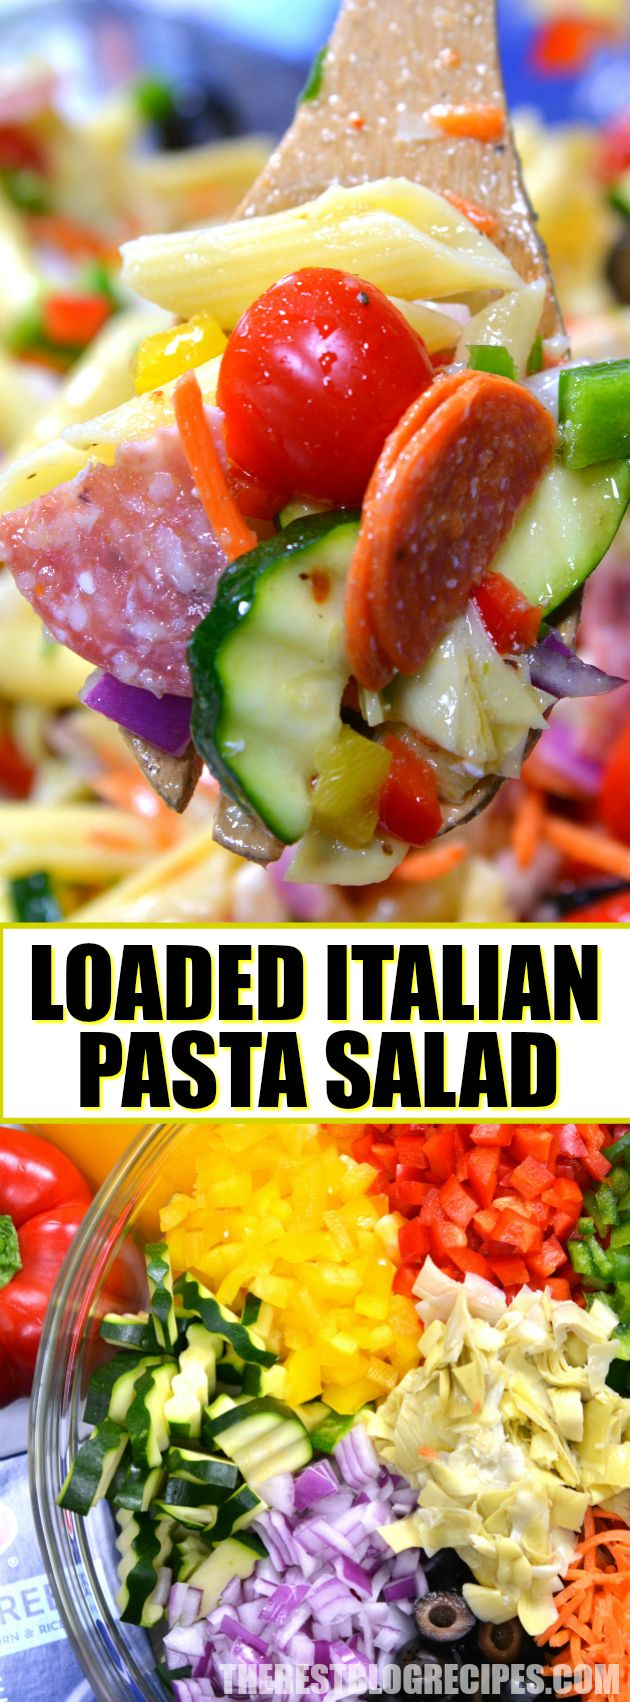 This Loaded Italian Pasta Salad from The Best Blog Recipes is a classic pasta salad that so incredibly easy to make. Loaded with fresh vegetables, cheese, pepperoni, salami, and Barilla Gluten Free Penne Pasta — this is a dish that is perfect for your next potluck, picnic, or anytime you need a hearty salad for a crowd! #ad #PastaPerfection